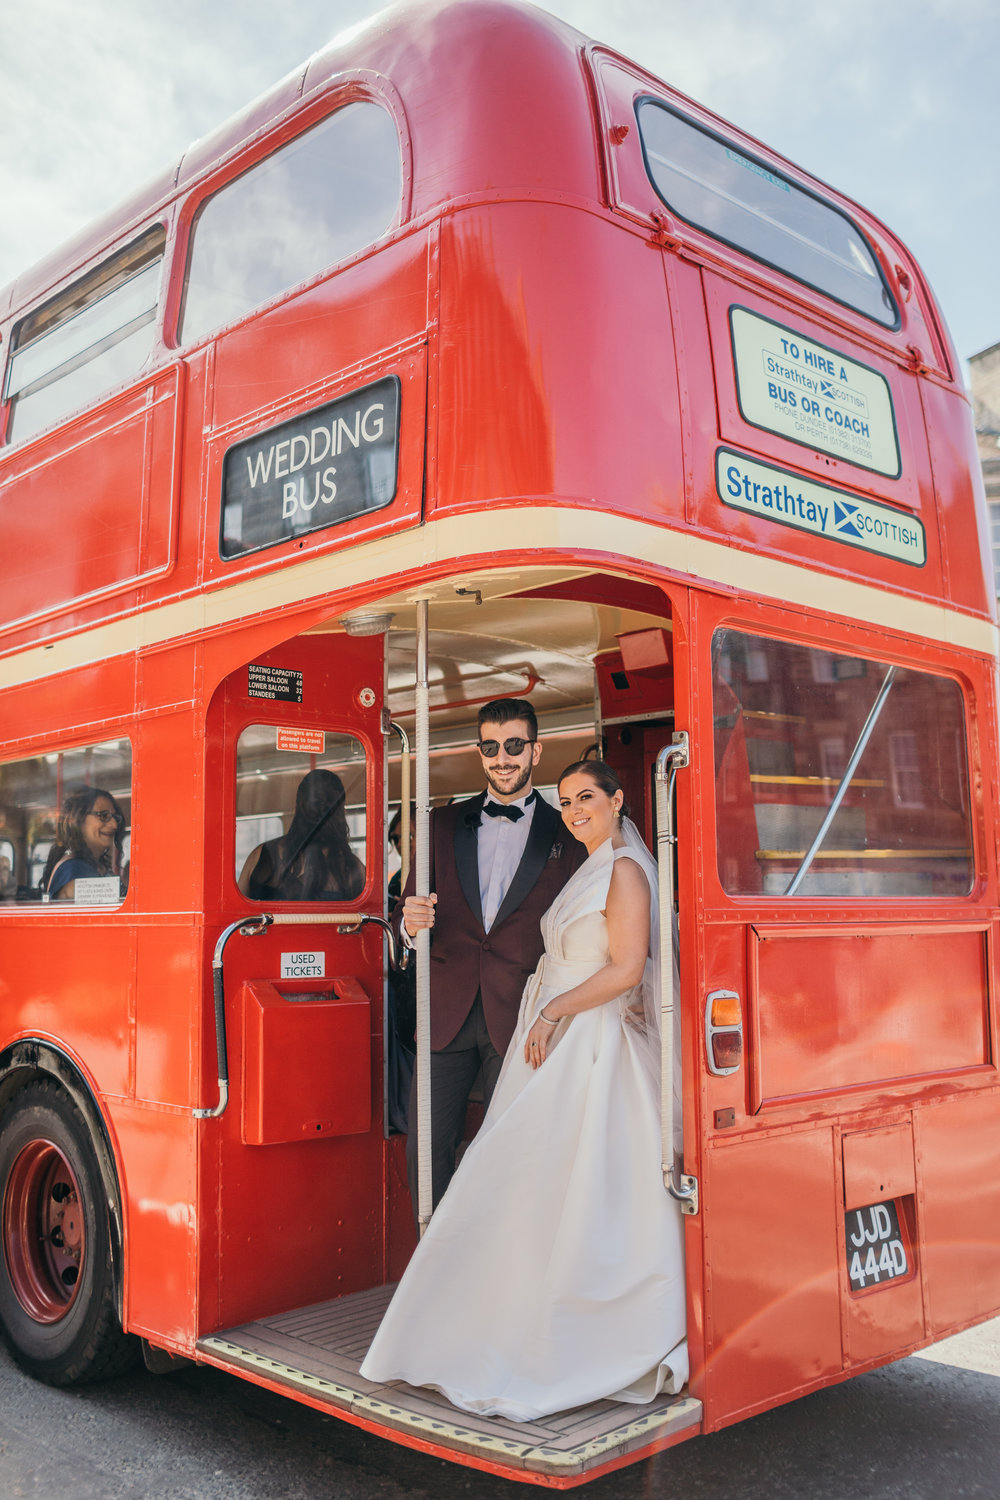 Bride and Groom Portraits on a vintage double decker bus in Edinburgh, Scotland at Carlowie Castle Wedding